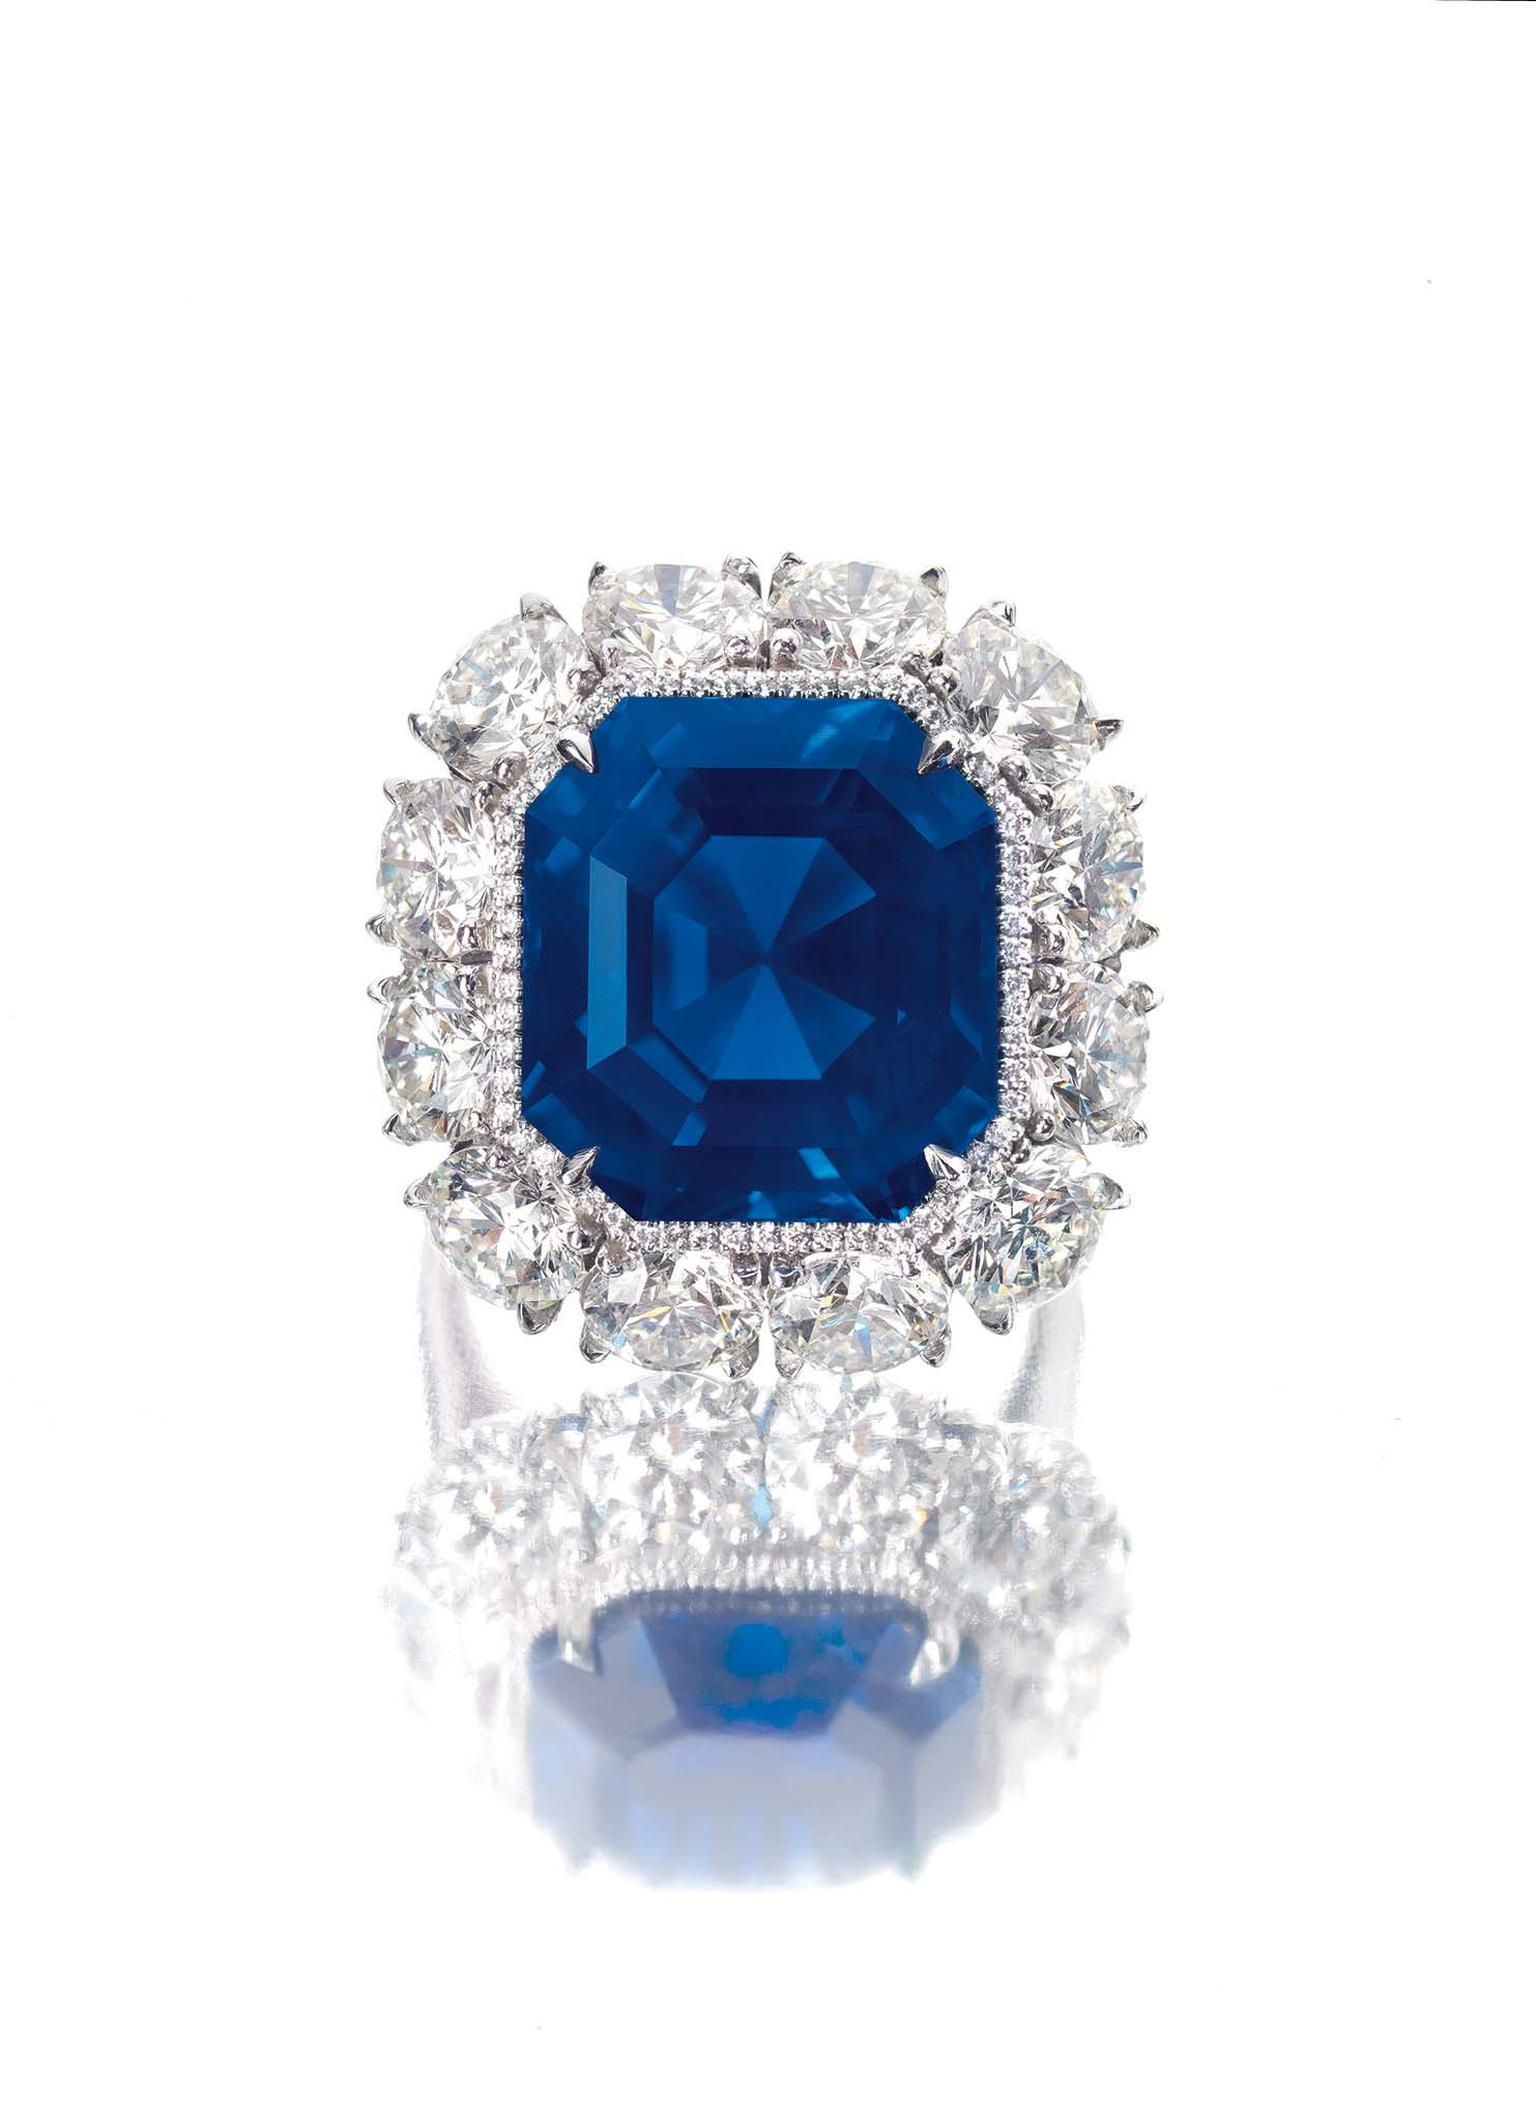 An Imperial Kashmir sapphire and diamond ring featuring a 17.16ct intense cornflower blue coloured sapphire also achieved a world auction record for price per carat for a sapphire when it sold for US$4.06 million or US$236,404 per carat.